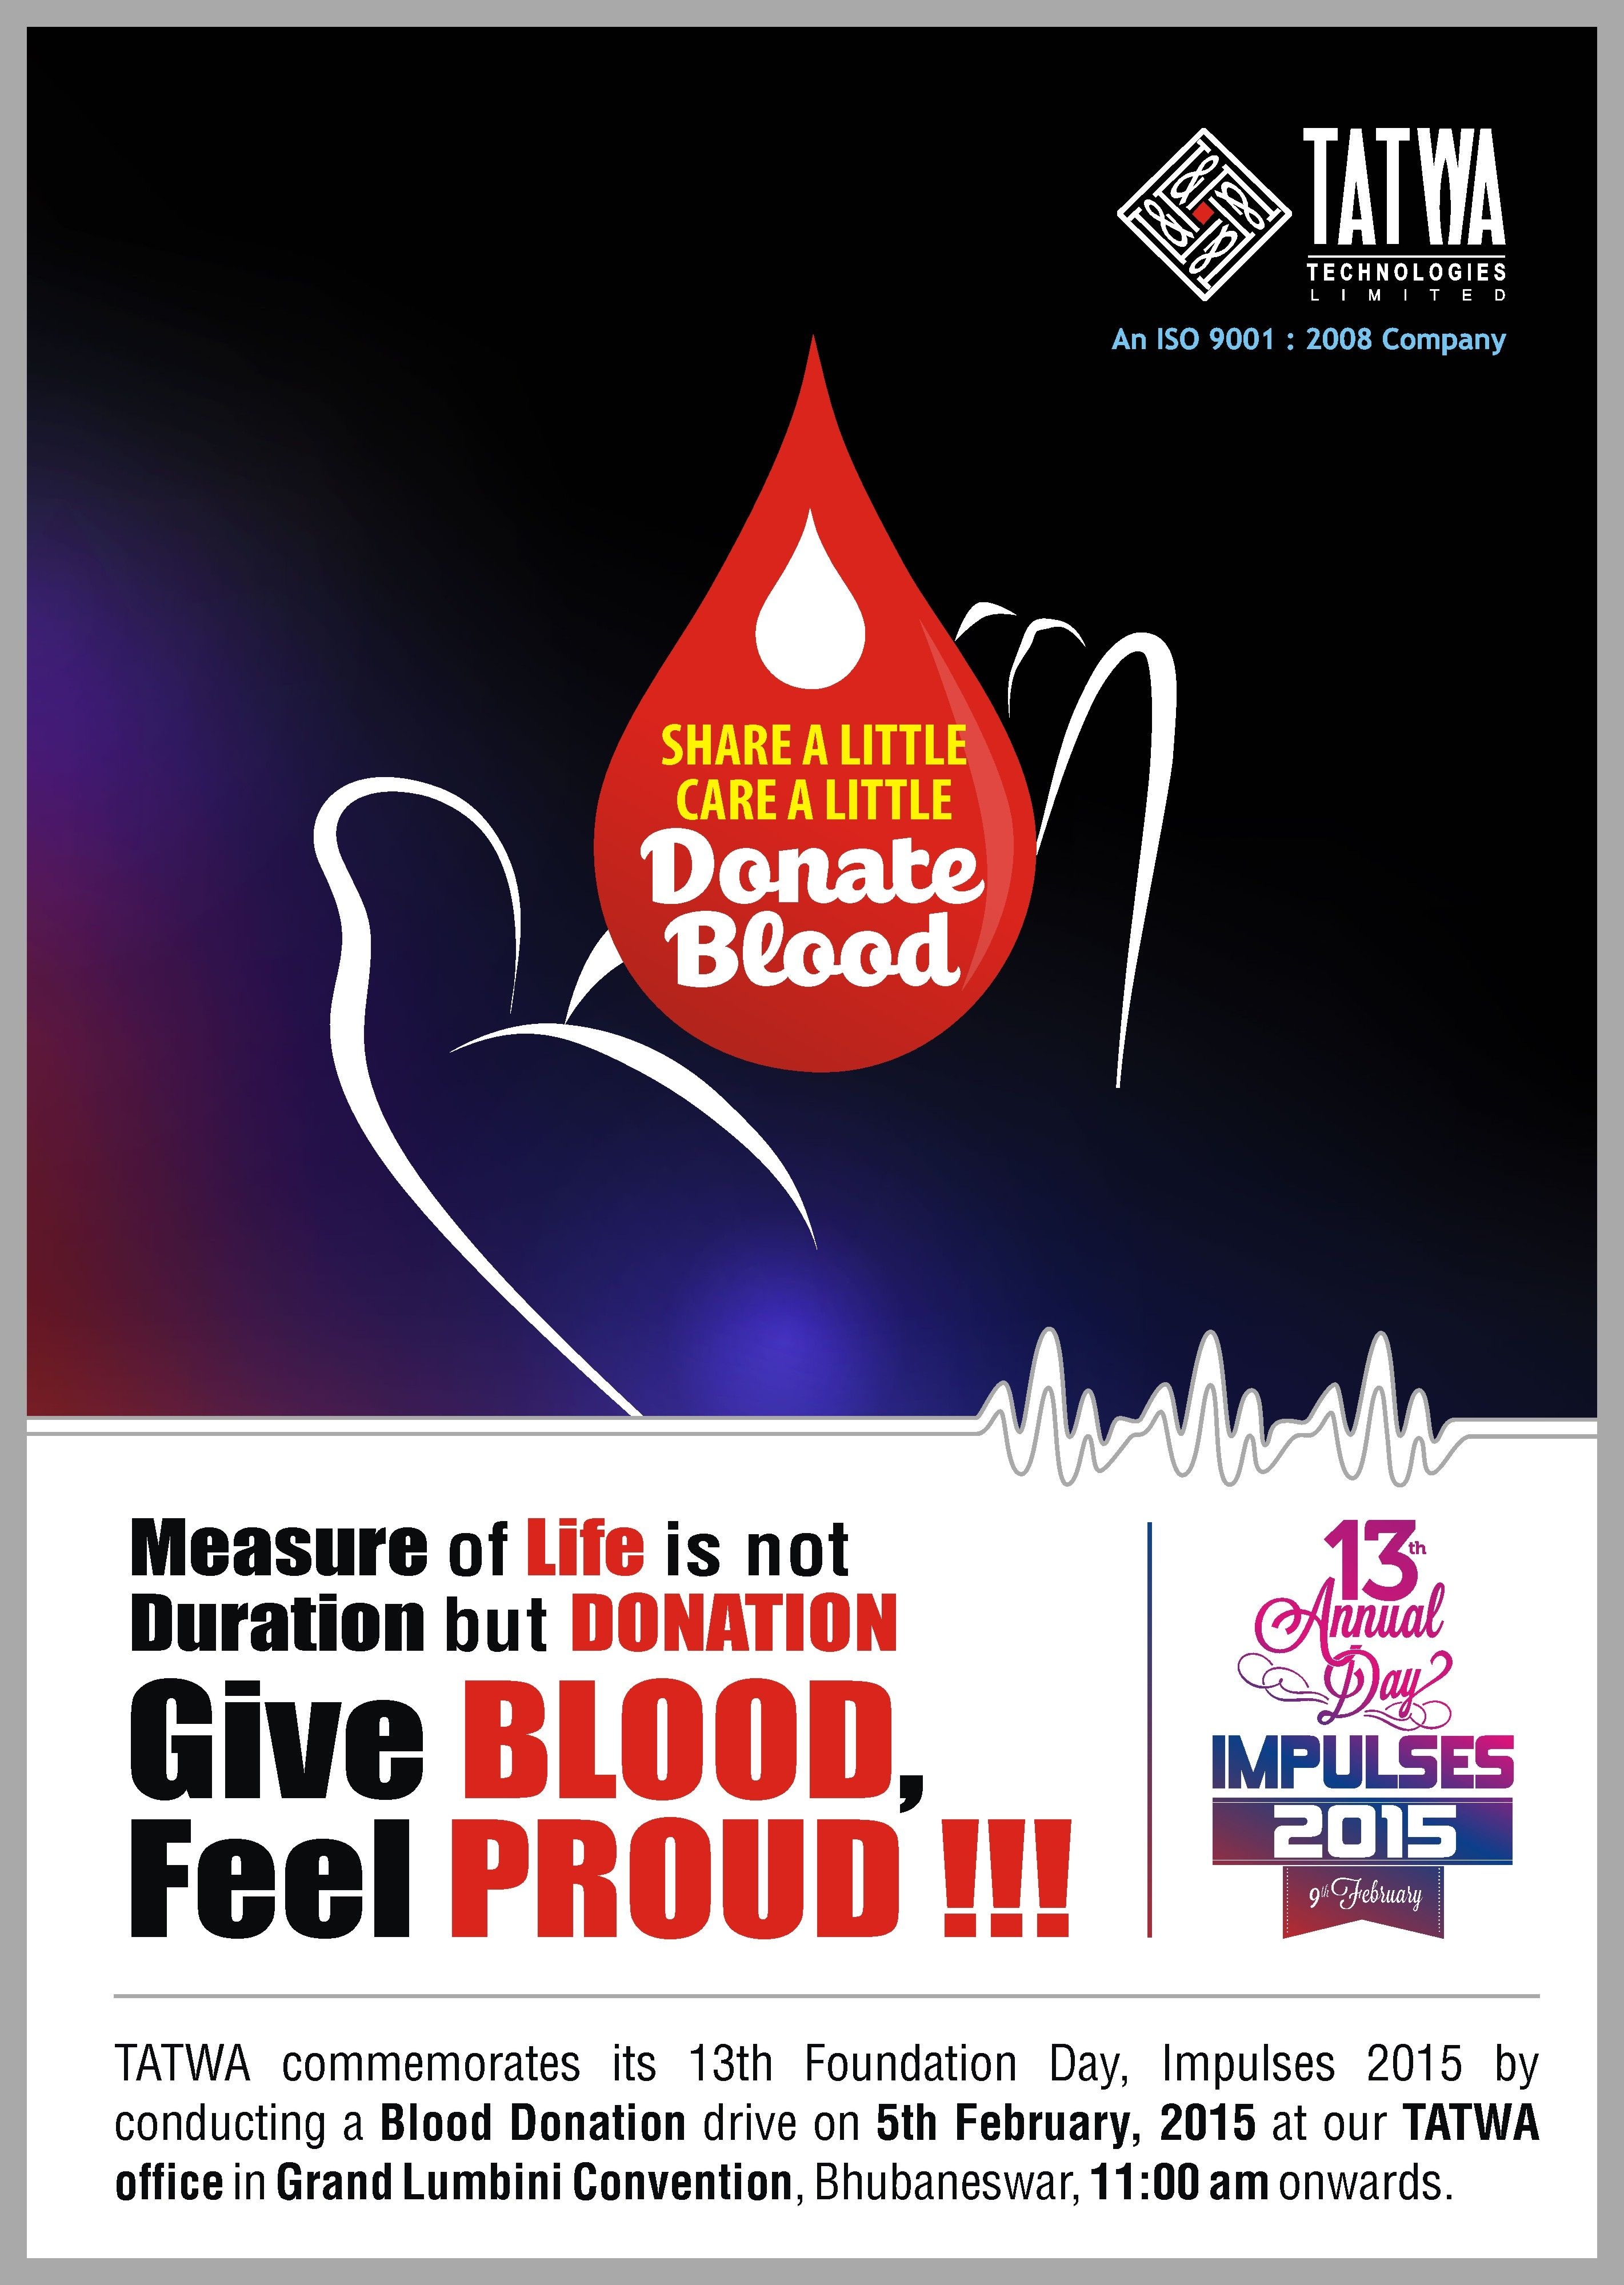 how to make blood plasma donation faster